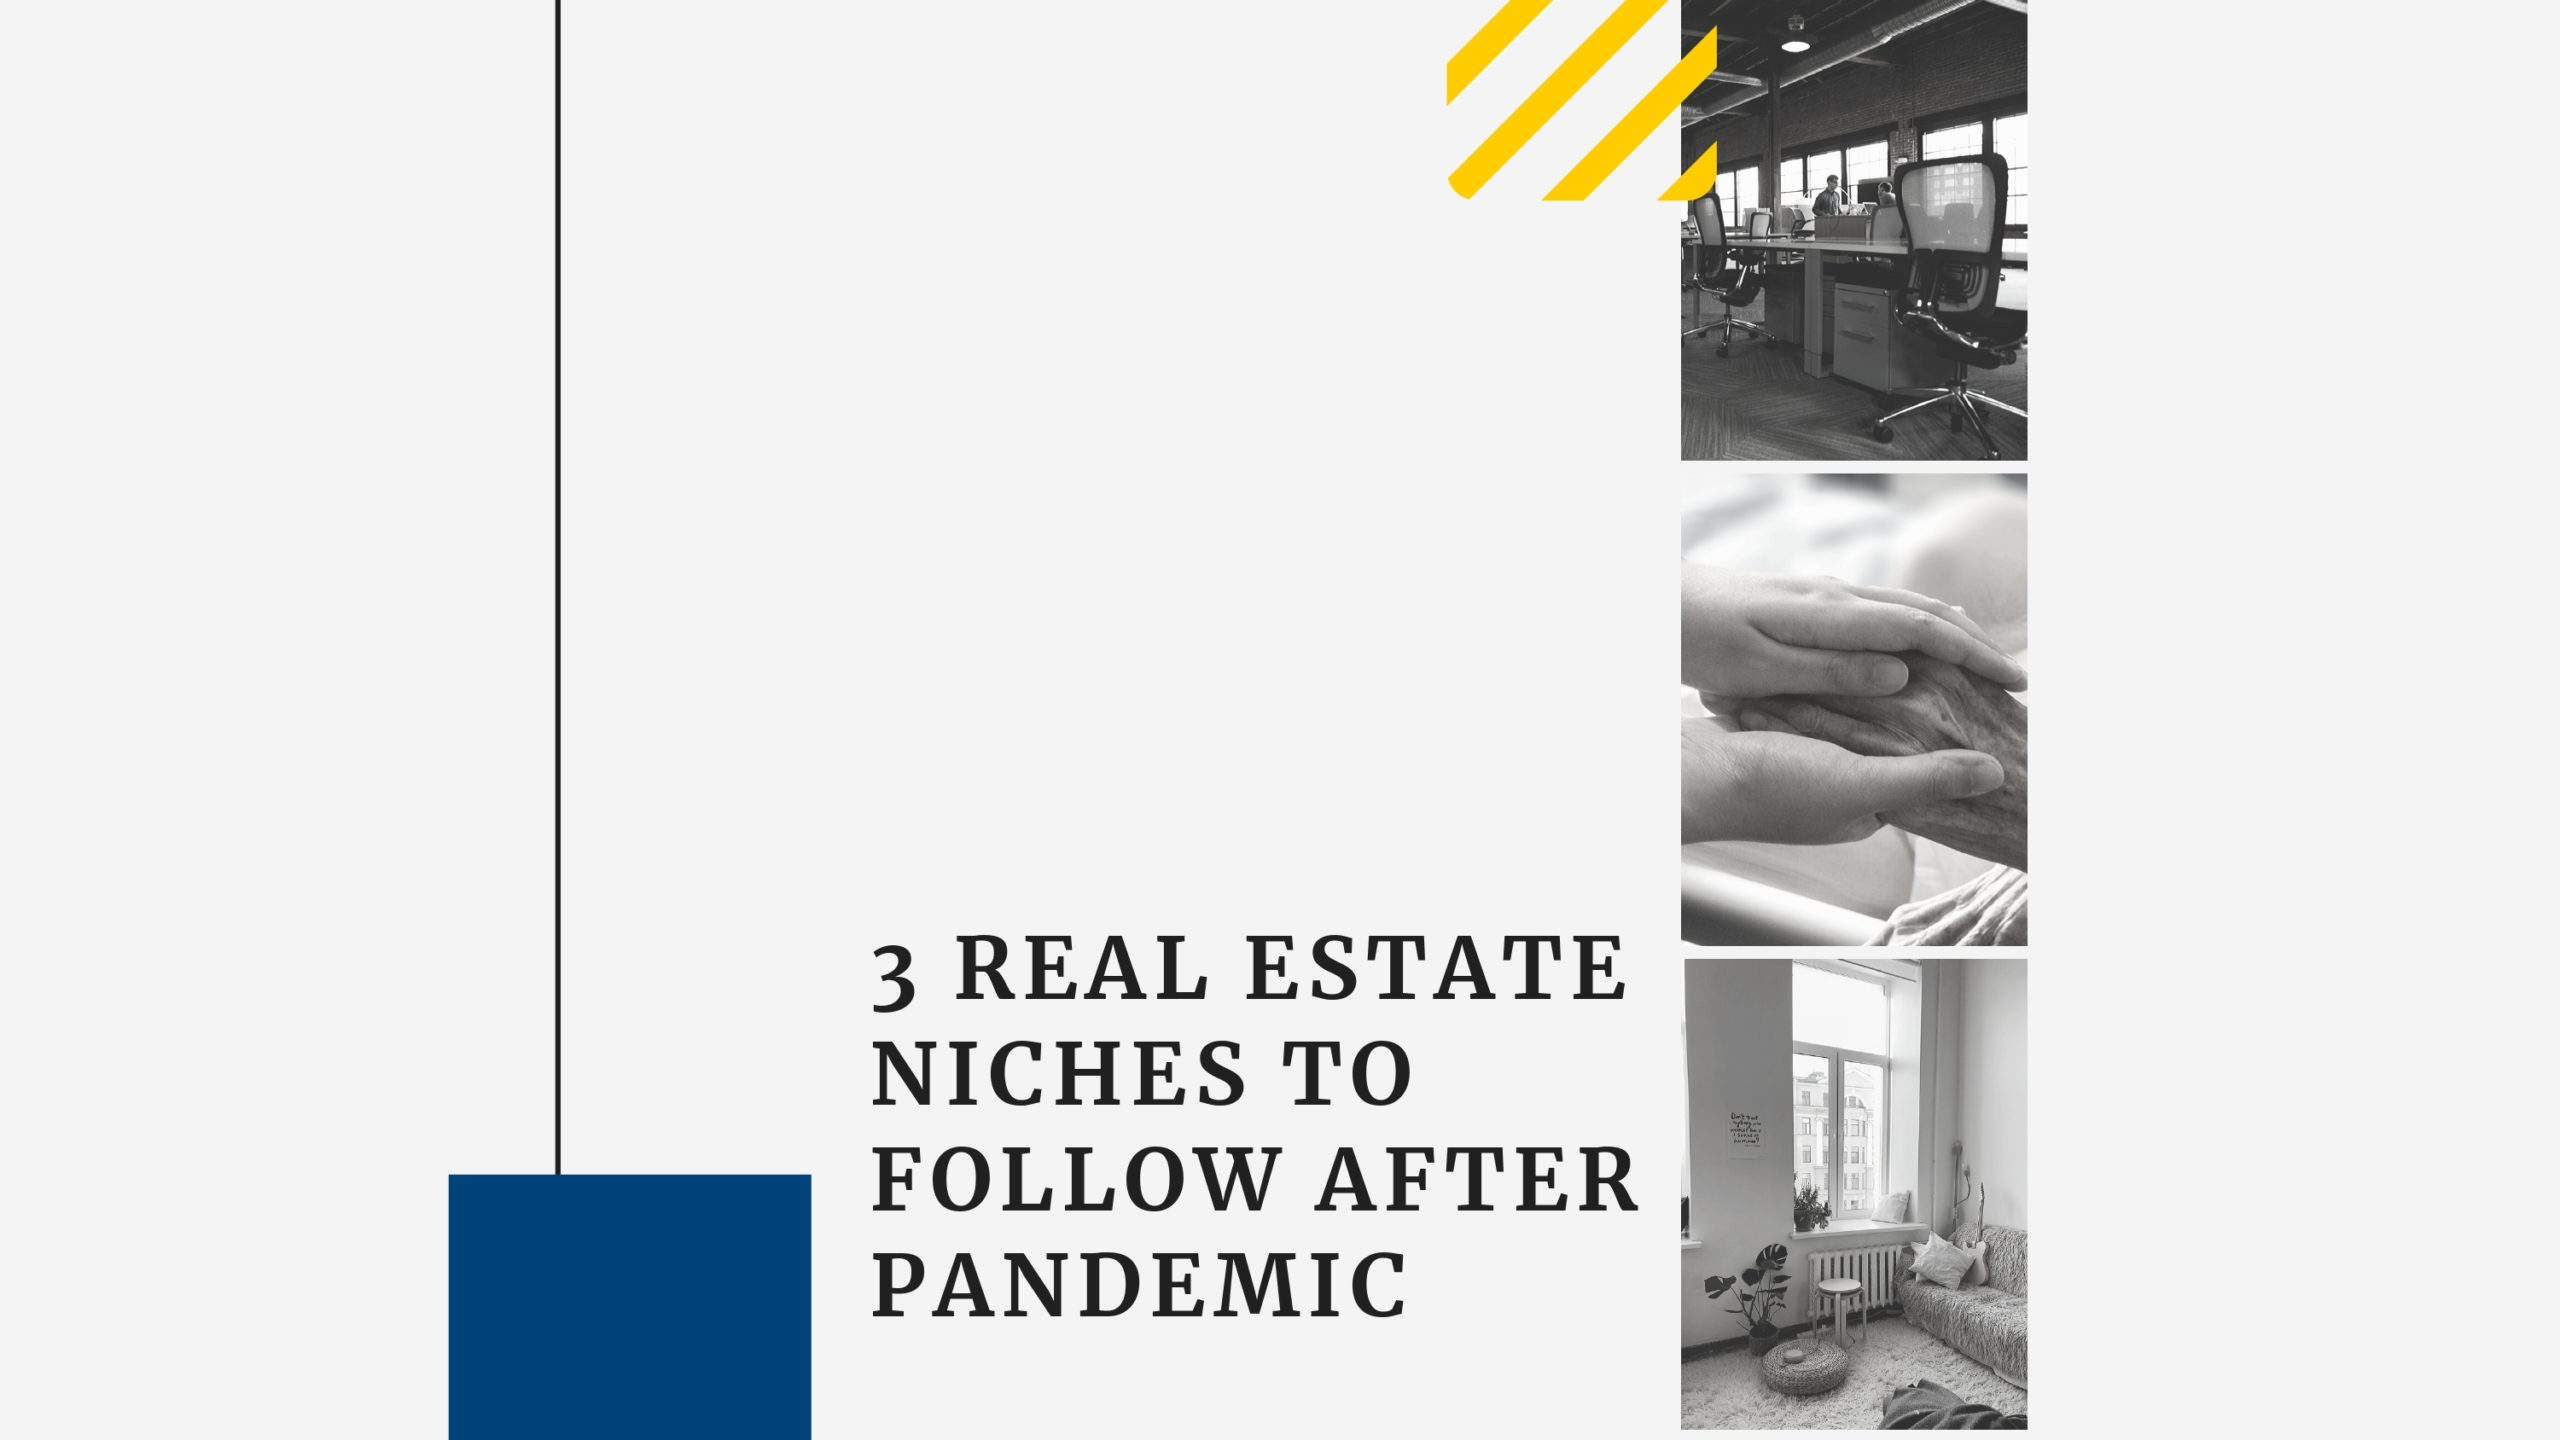 3 real estate niches to follow after pandemic